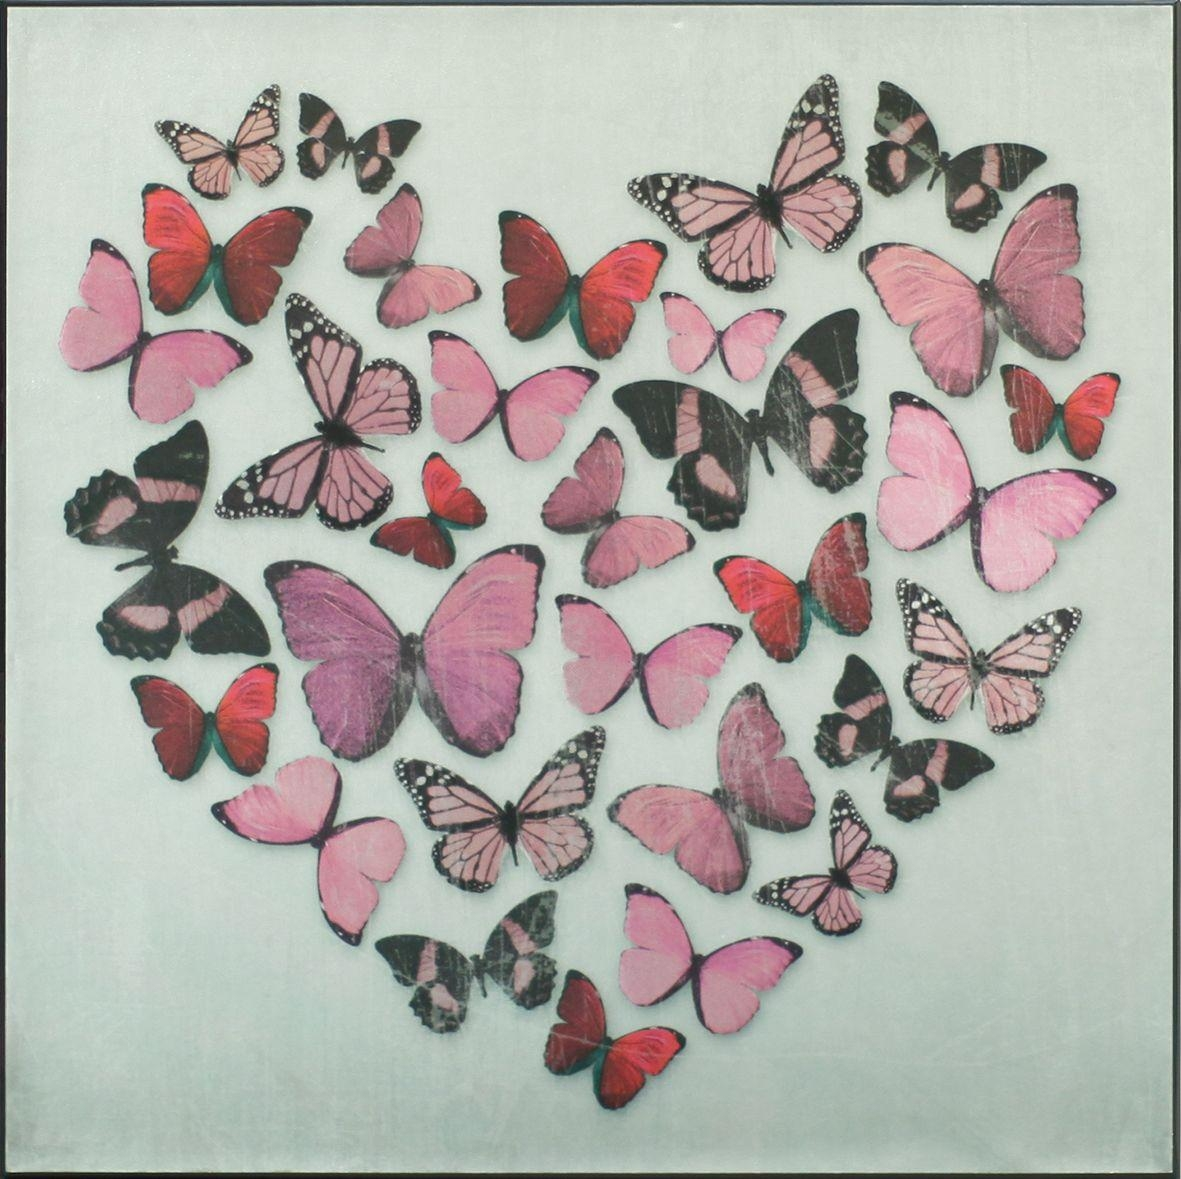 Butterfly Love Pink Superfoil Canvasarthouse : Wallpaper Direct Regarding Butterfly Canvas Wall Art (Image 6 of 20)